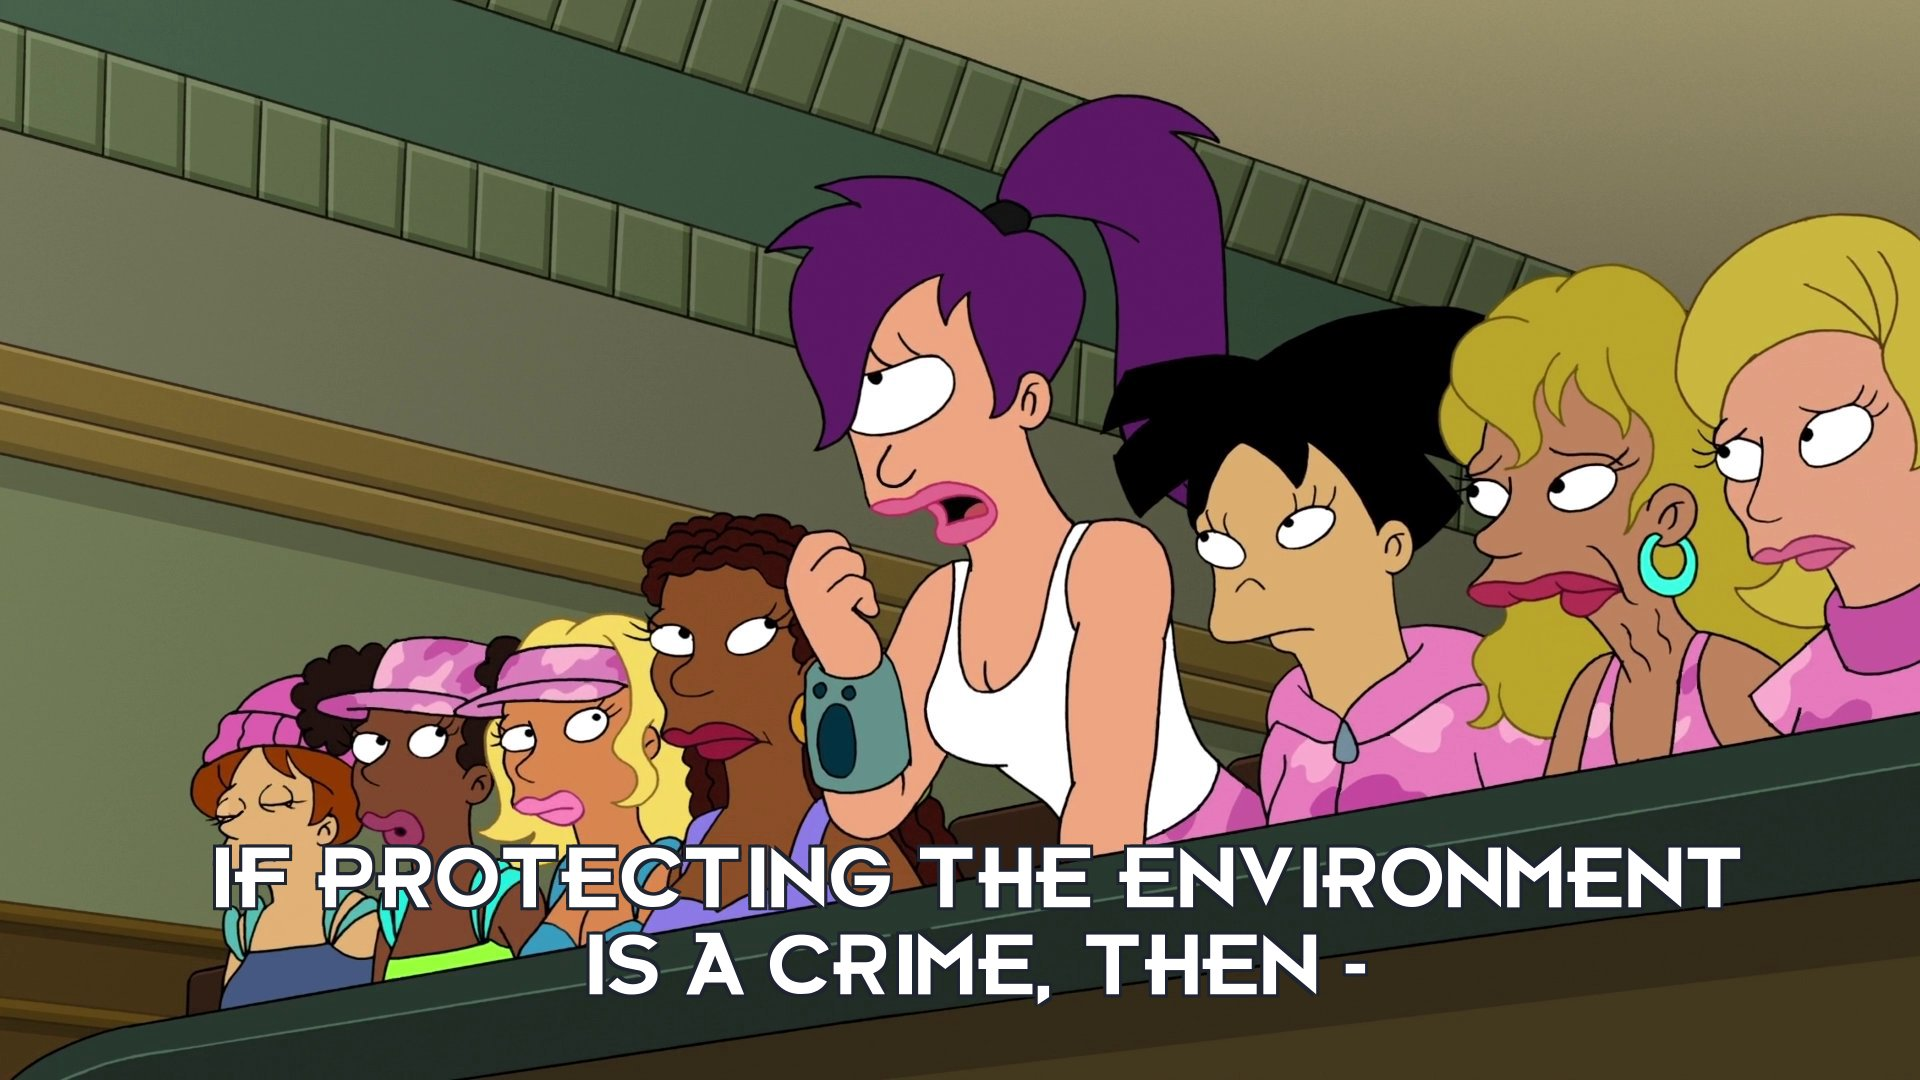 Turanga Leela: If protecting the environment is a crime, then –